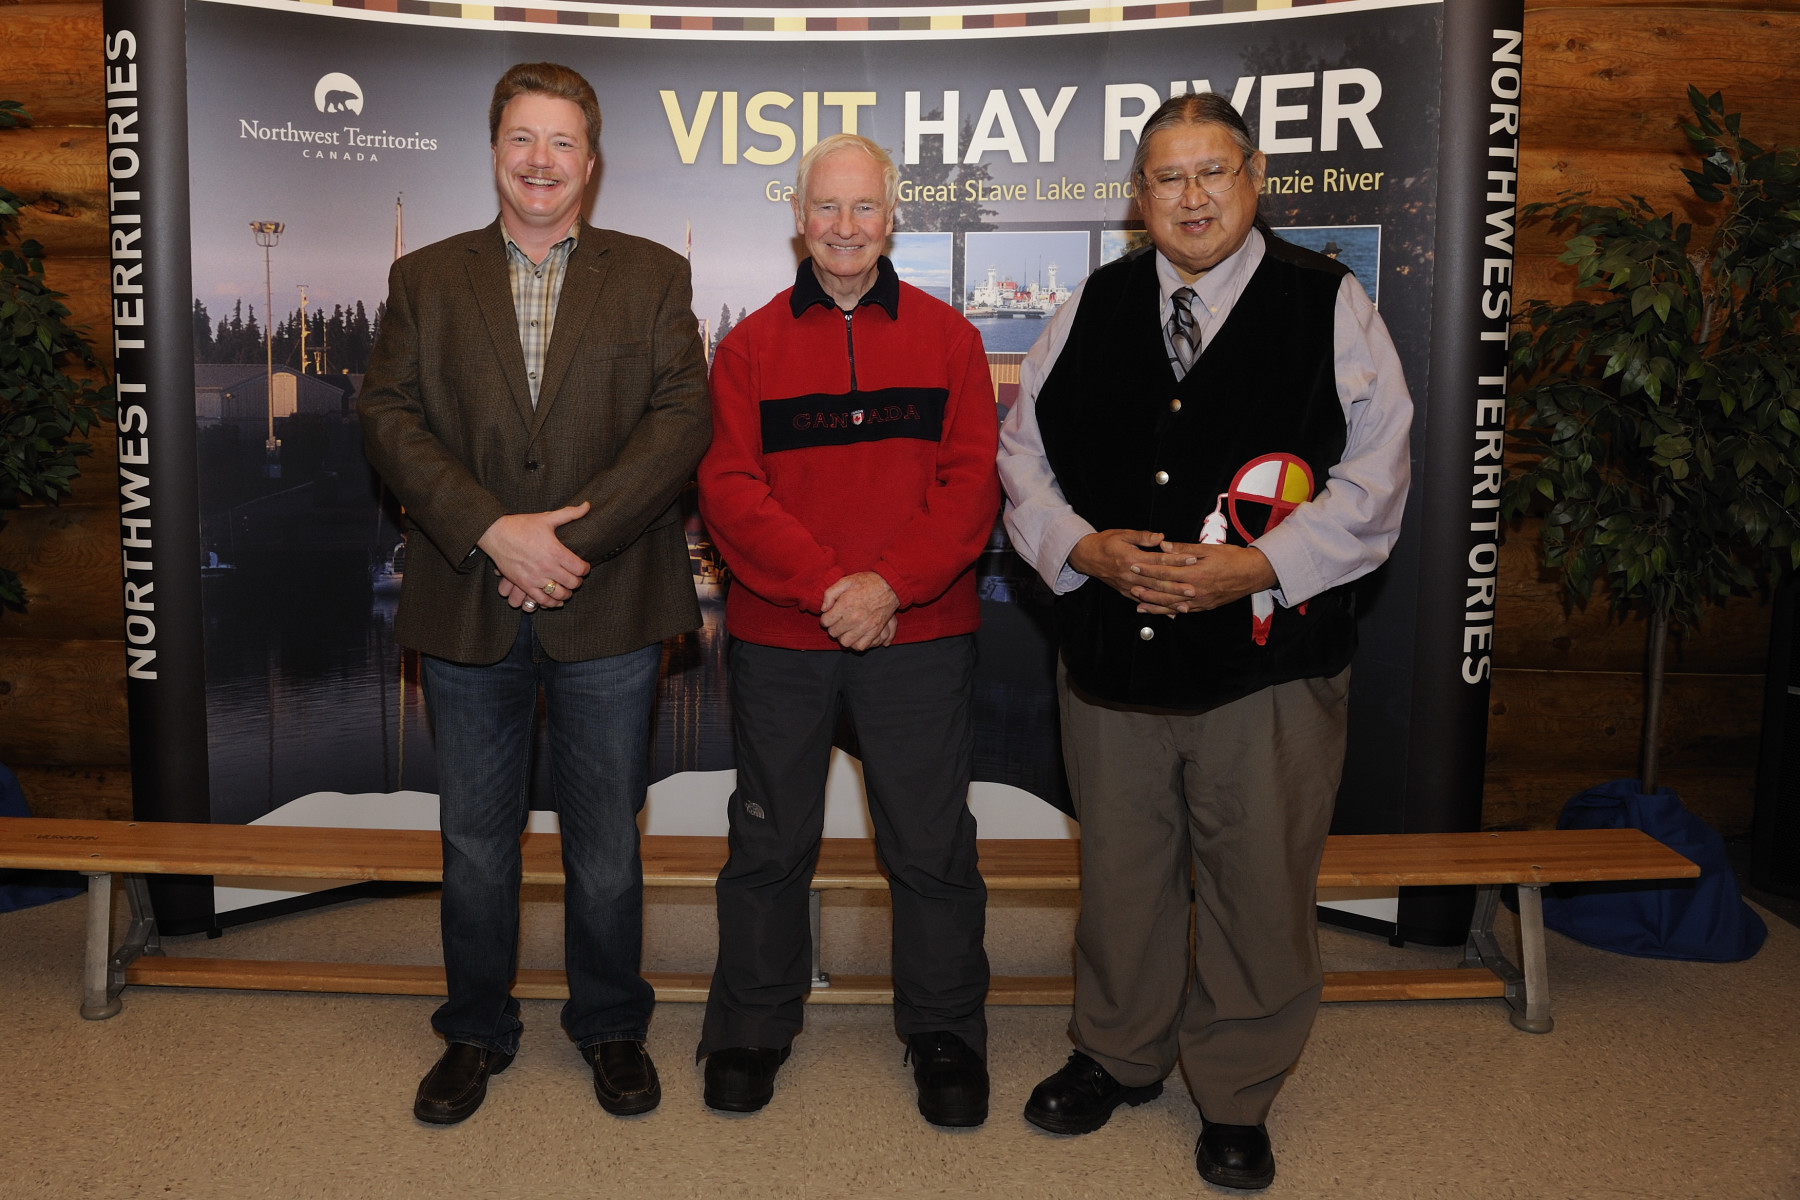 During a community reception hosted by the Town of Hay River, His Excellency was offered a warm welcome by His Worship Kelly Schofield (left), Mayor of the Town of Hay River, and Chief Roy Fabien (right), K'at'odeechee First Nation, along with members of the Legislative Assembly and community representatives.